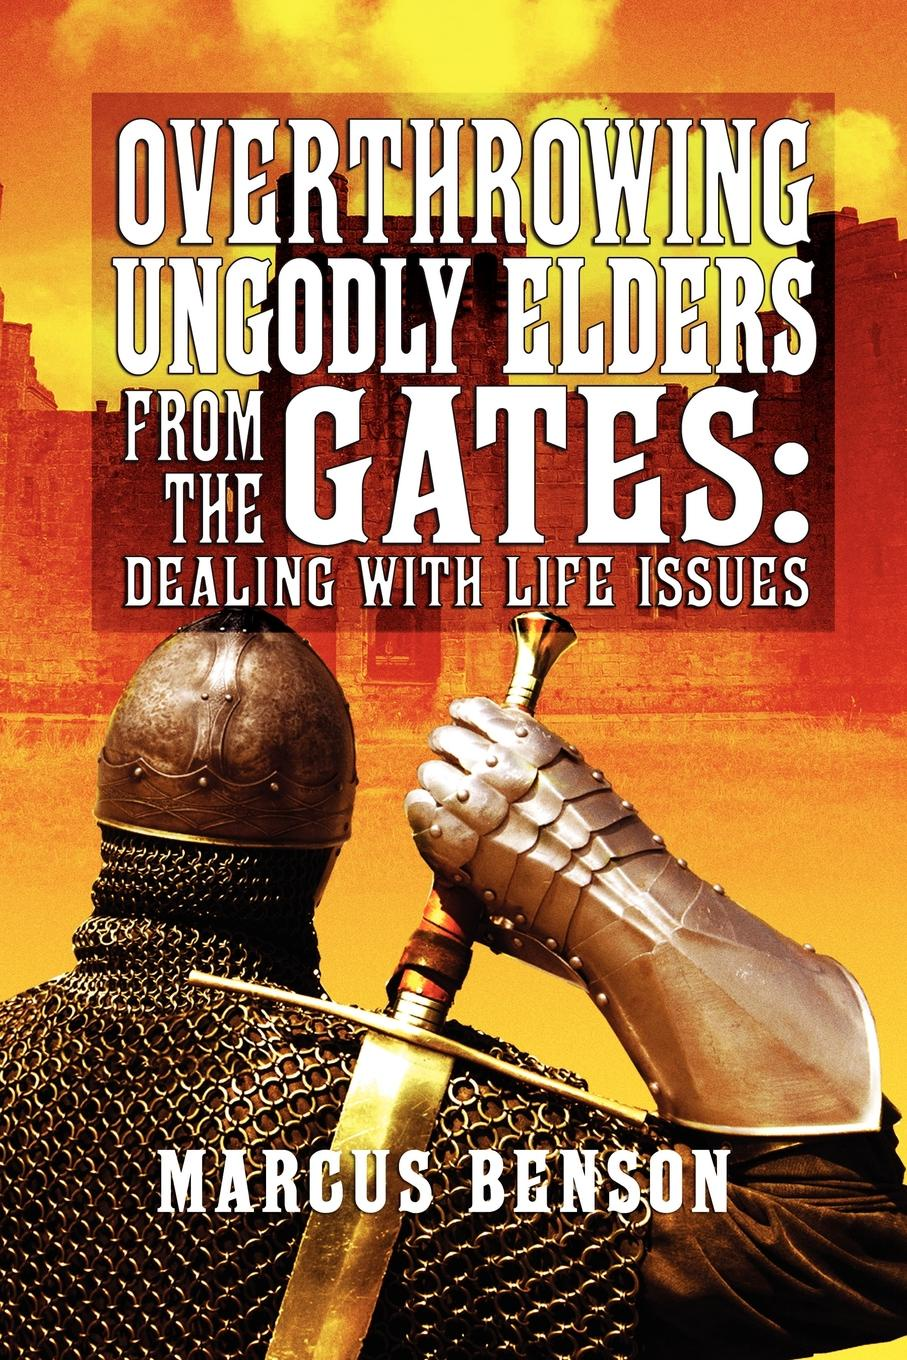 Overthrowing Ungodly Elders from the Gates. Dealing with Life Issues